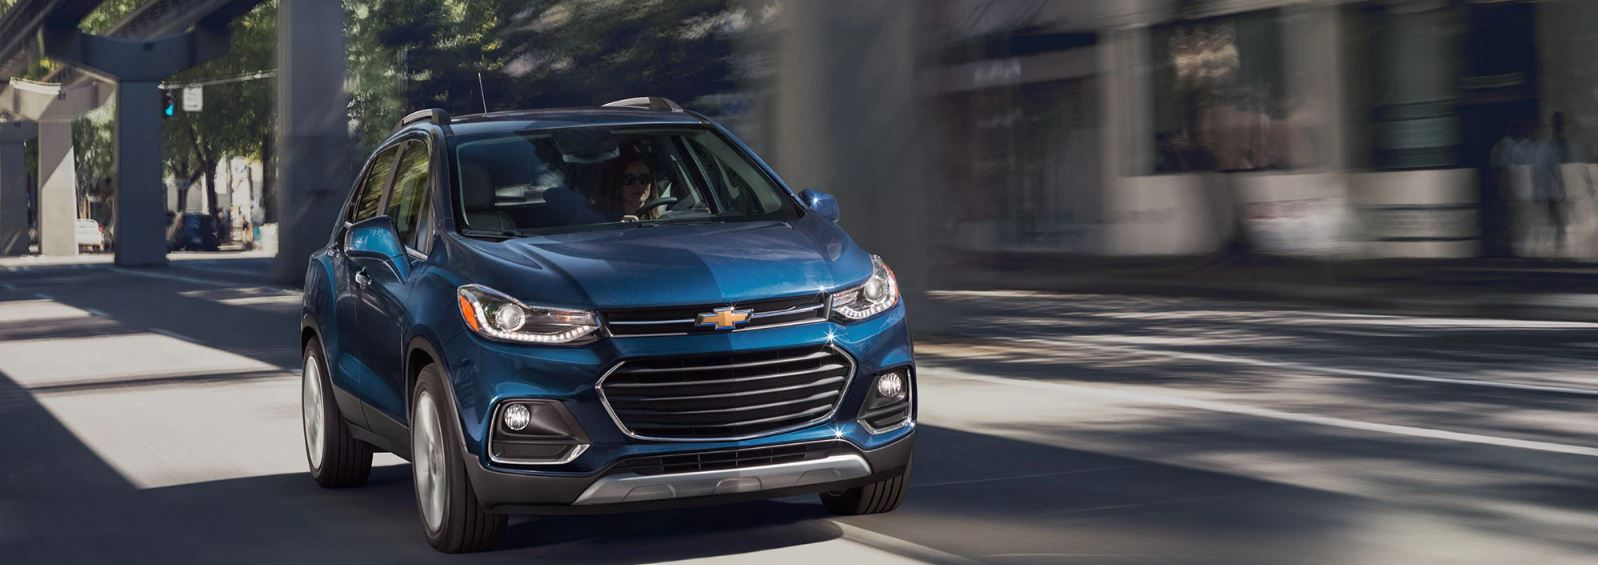 2020 Chevrolet Trax for Sale near Orland Park, IL